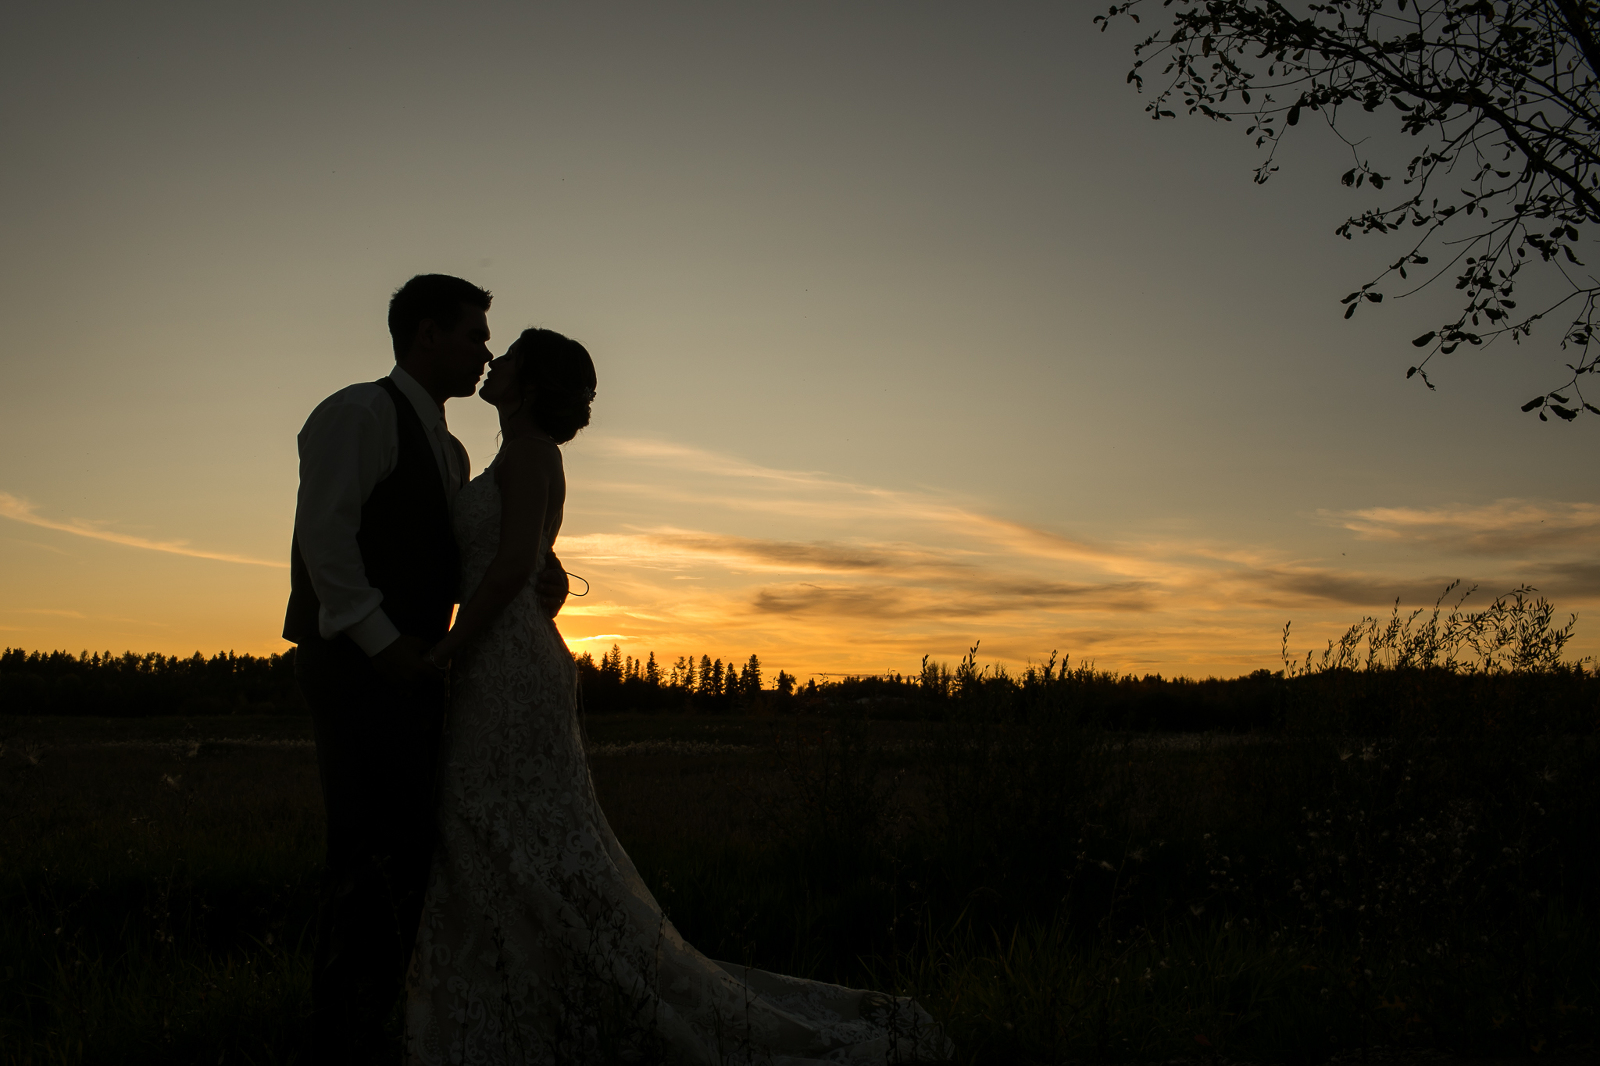 edmonton wedding photographer makes a picture of a bride and groom silhouetted against the sunset